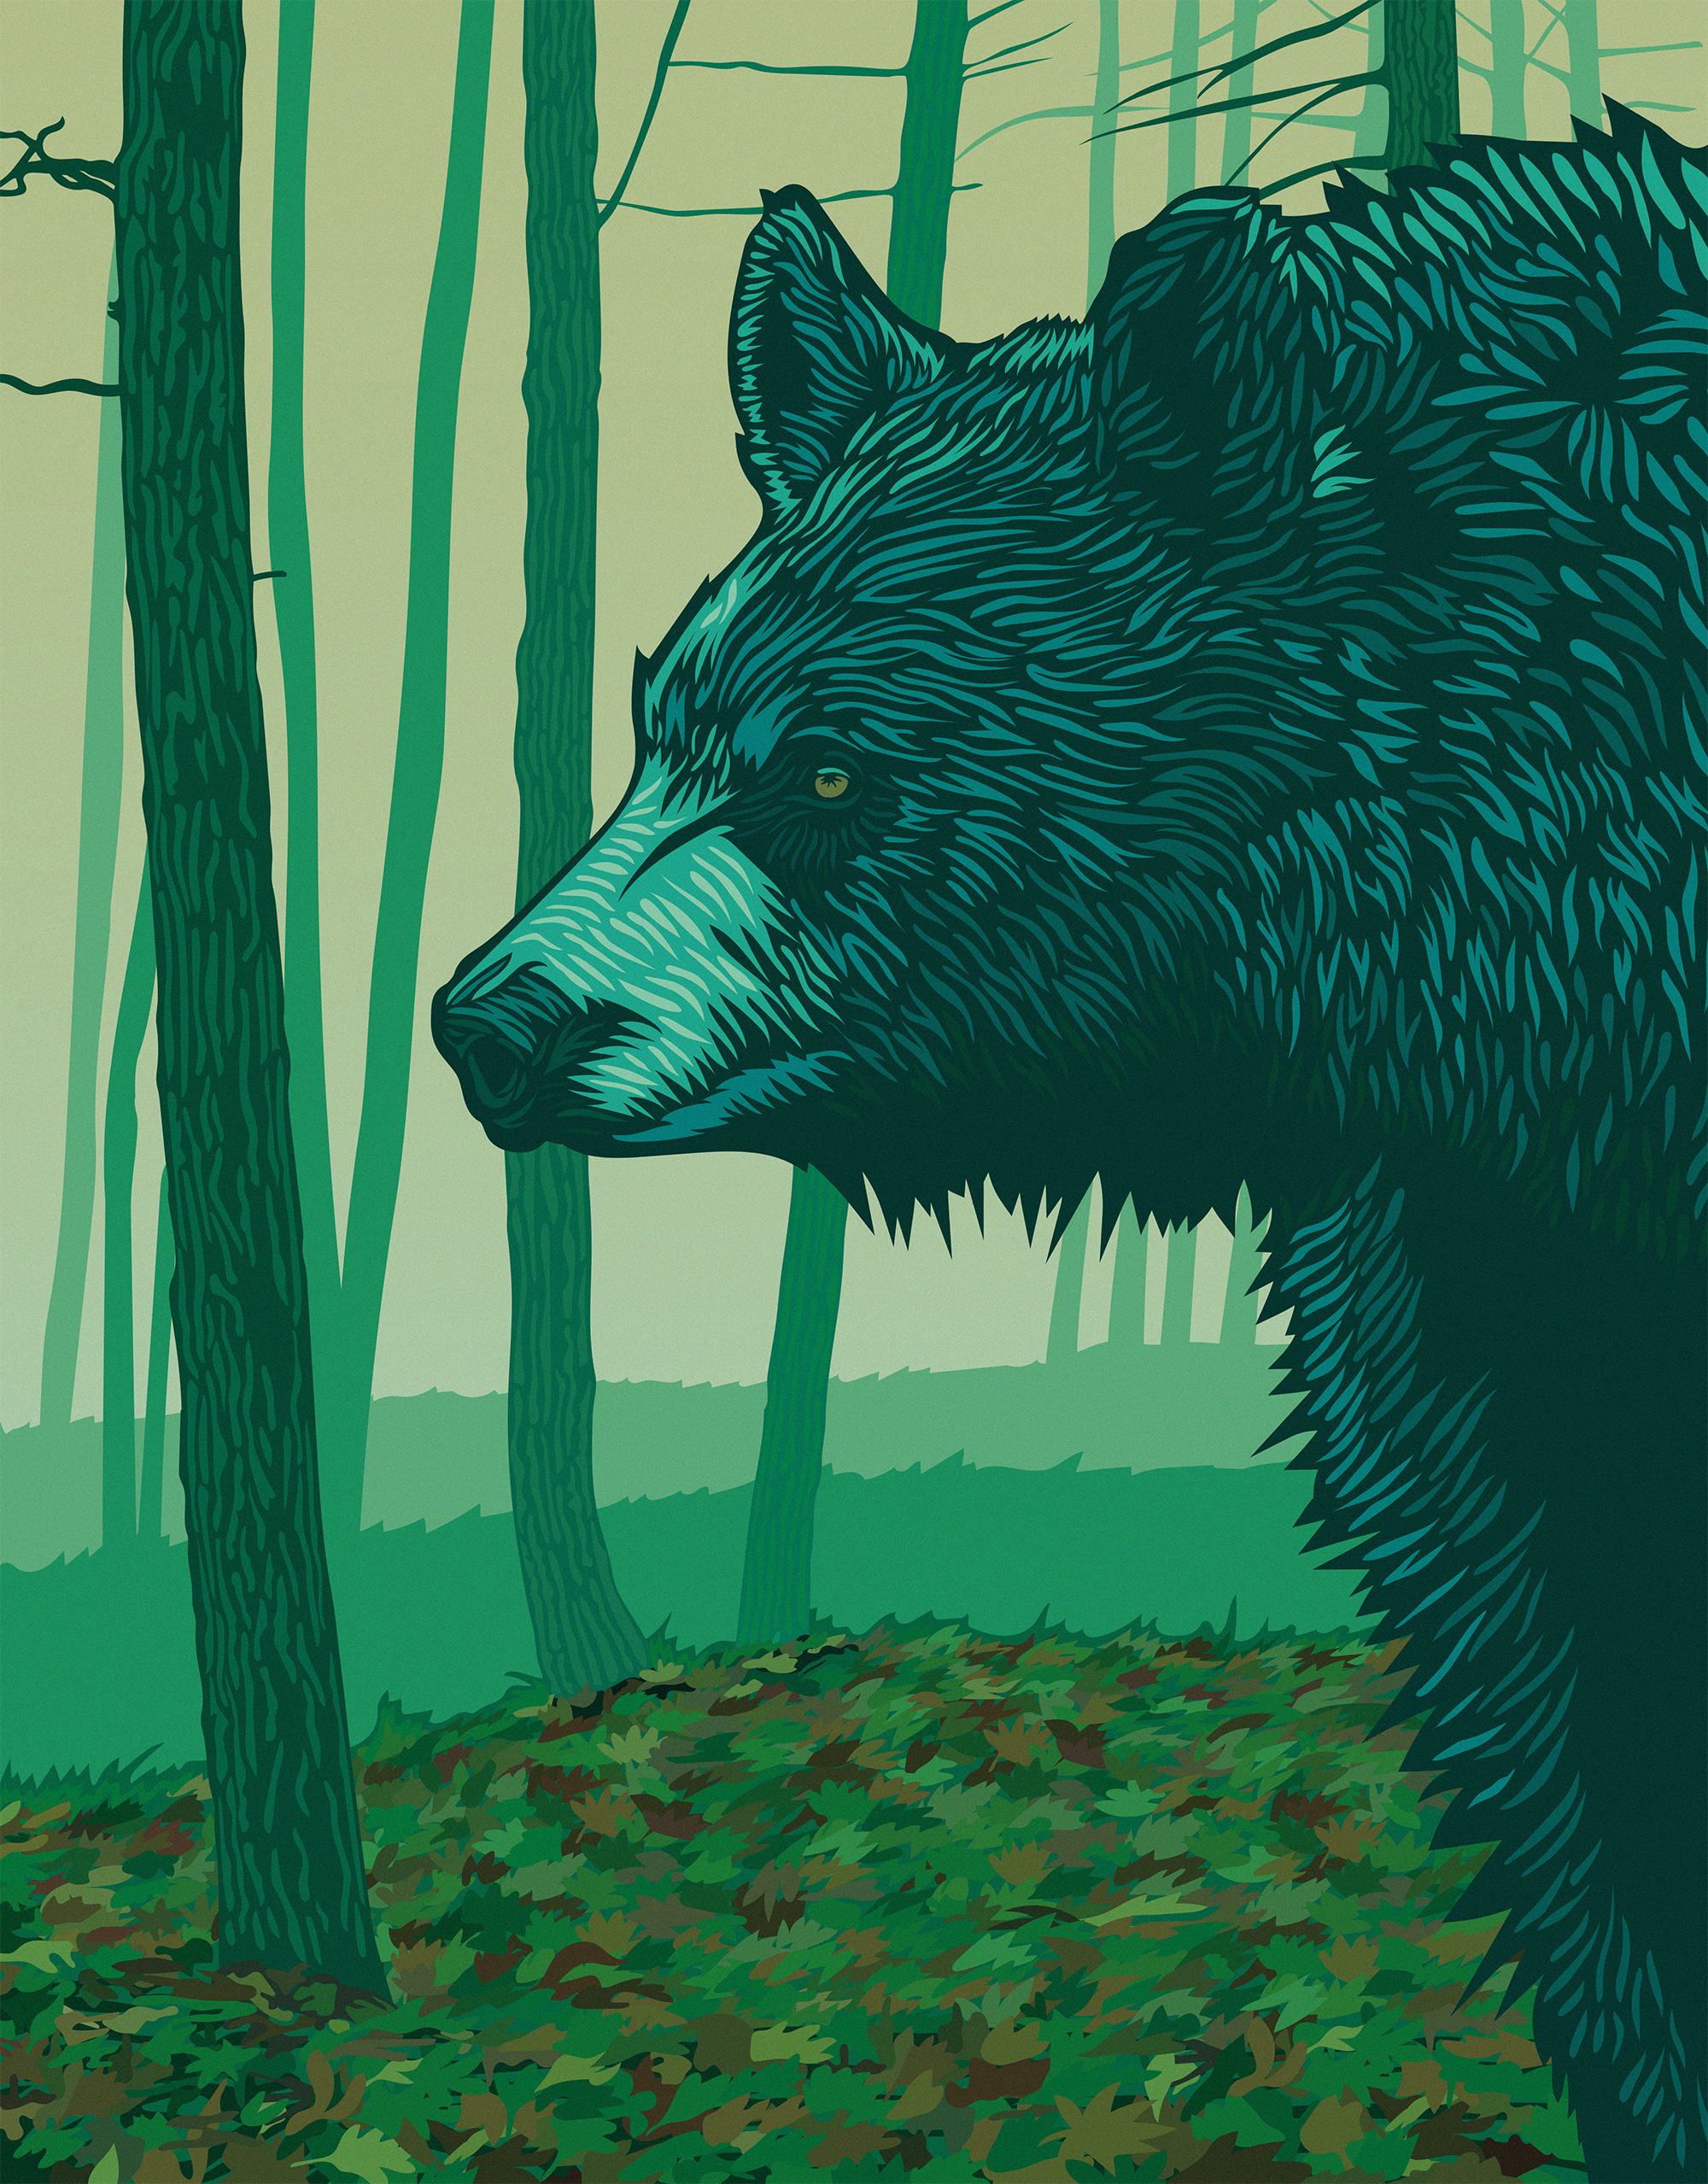 Bear-Illustration.jpg